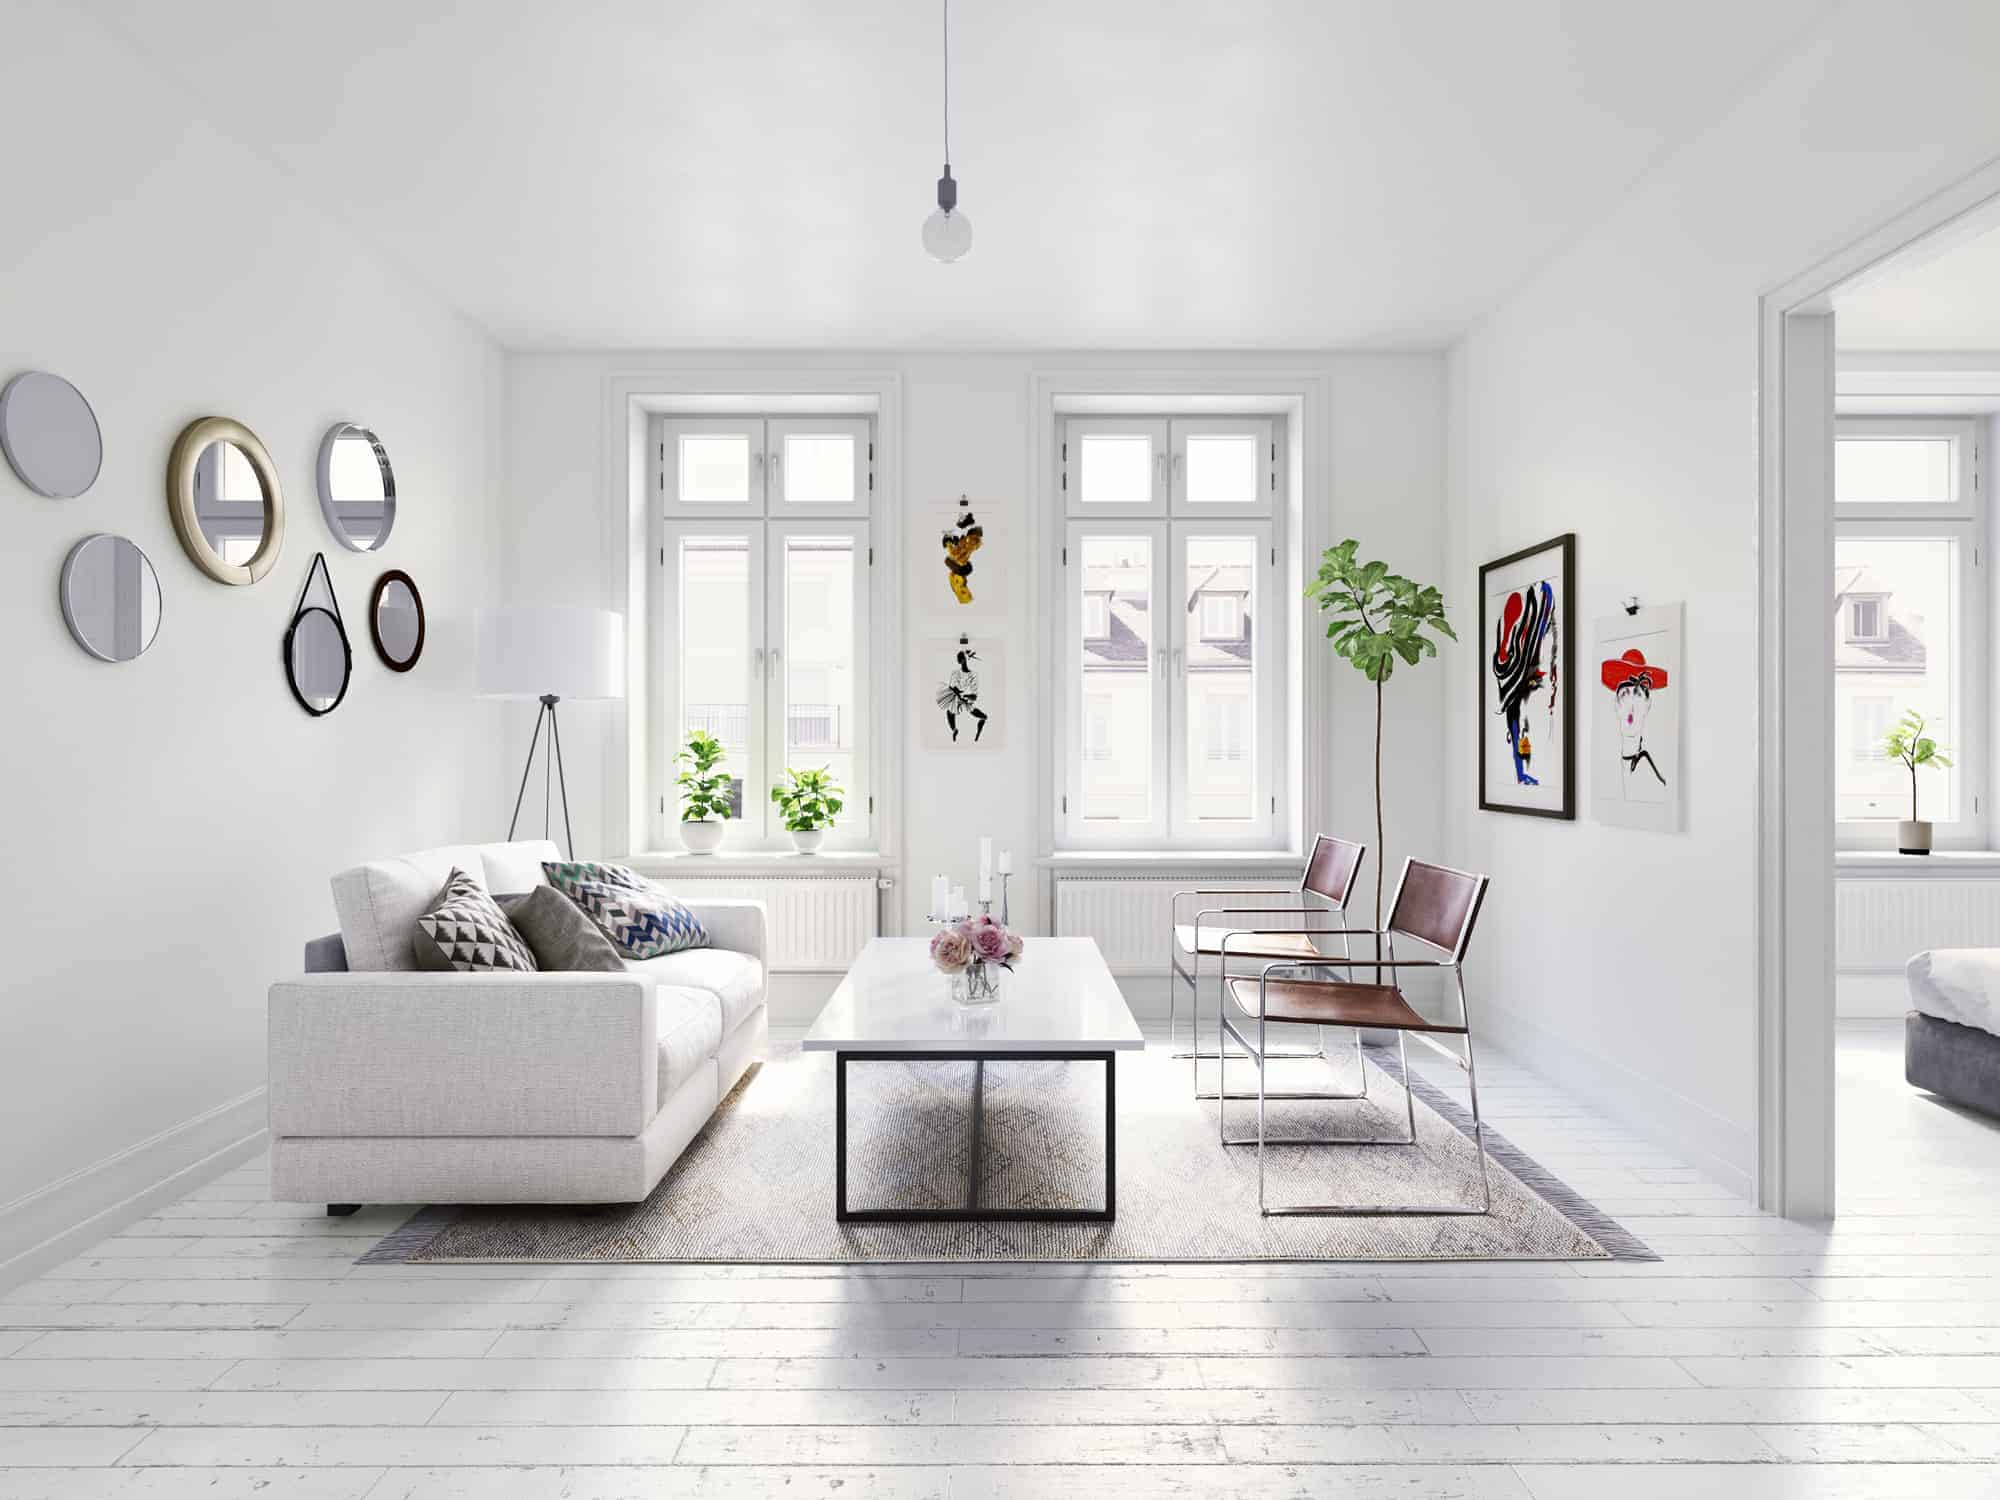 People usually like the white color and simplicity in interior. Scandinavian is very popular style nowadays. & Scandinavian - Design Ideas